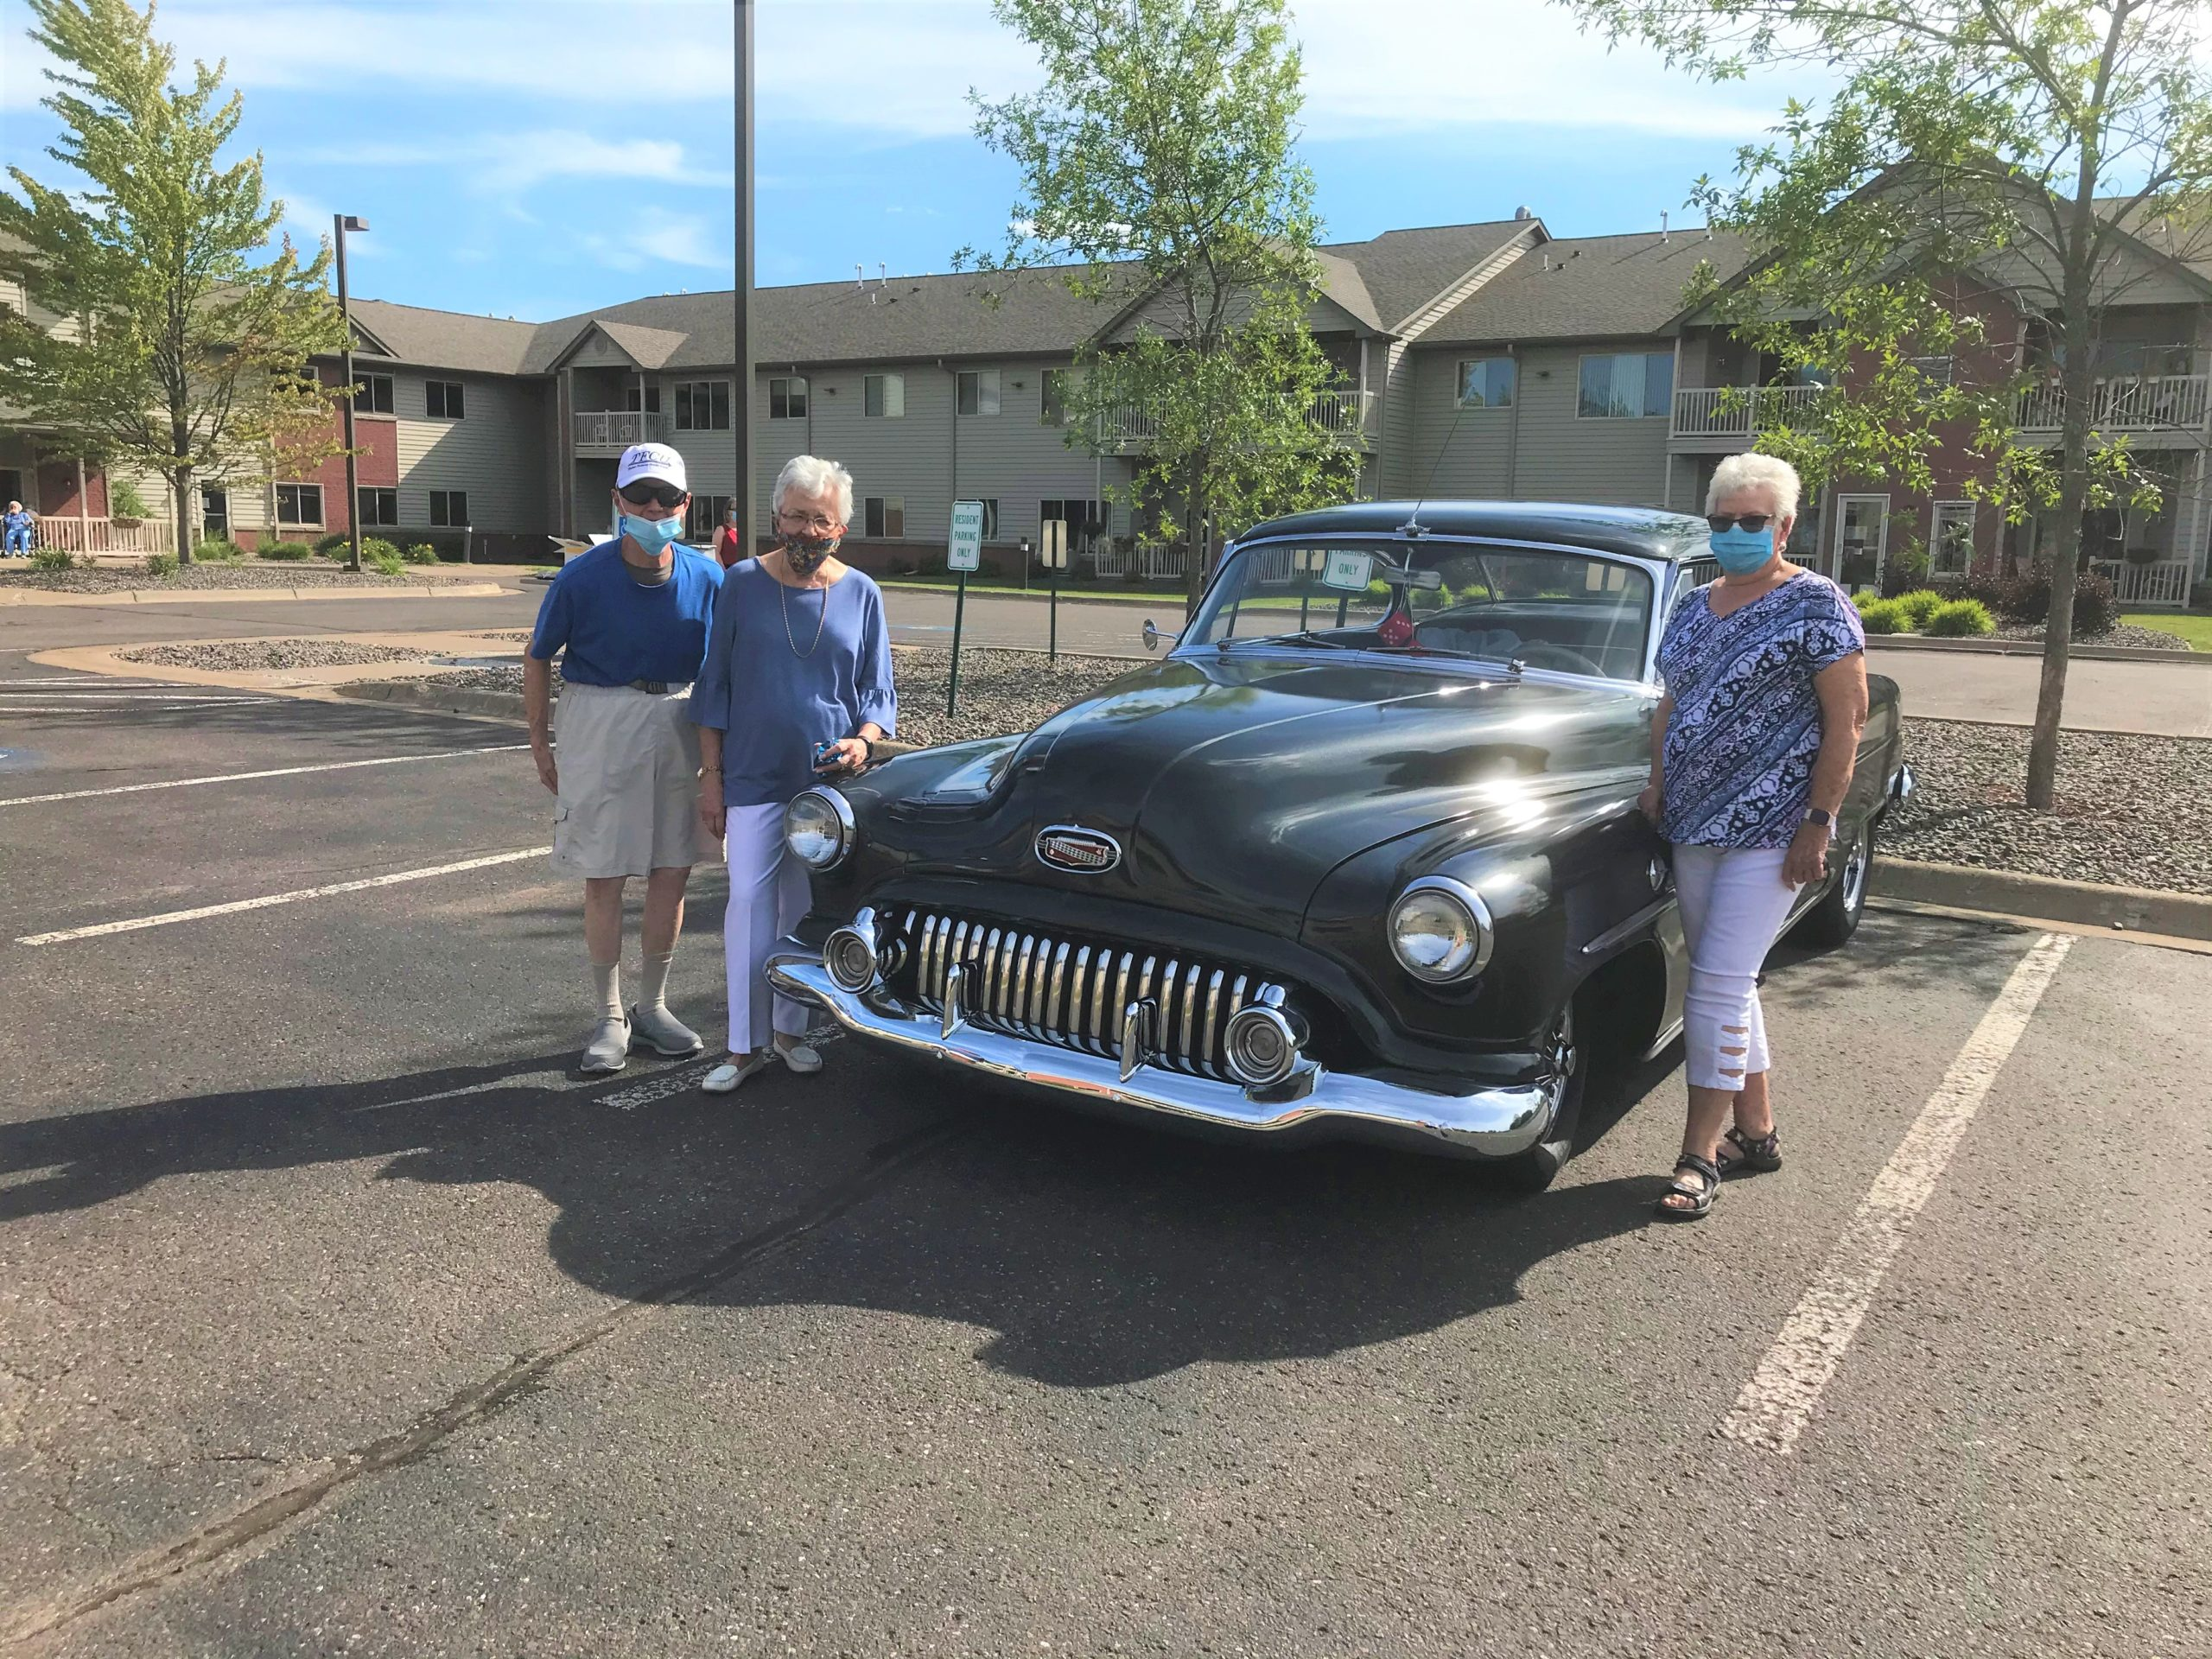 Dick and Judy T and Marge checking out the Vintage car that was in the parking lot.